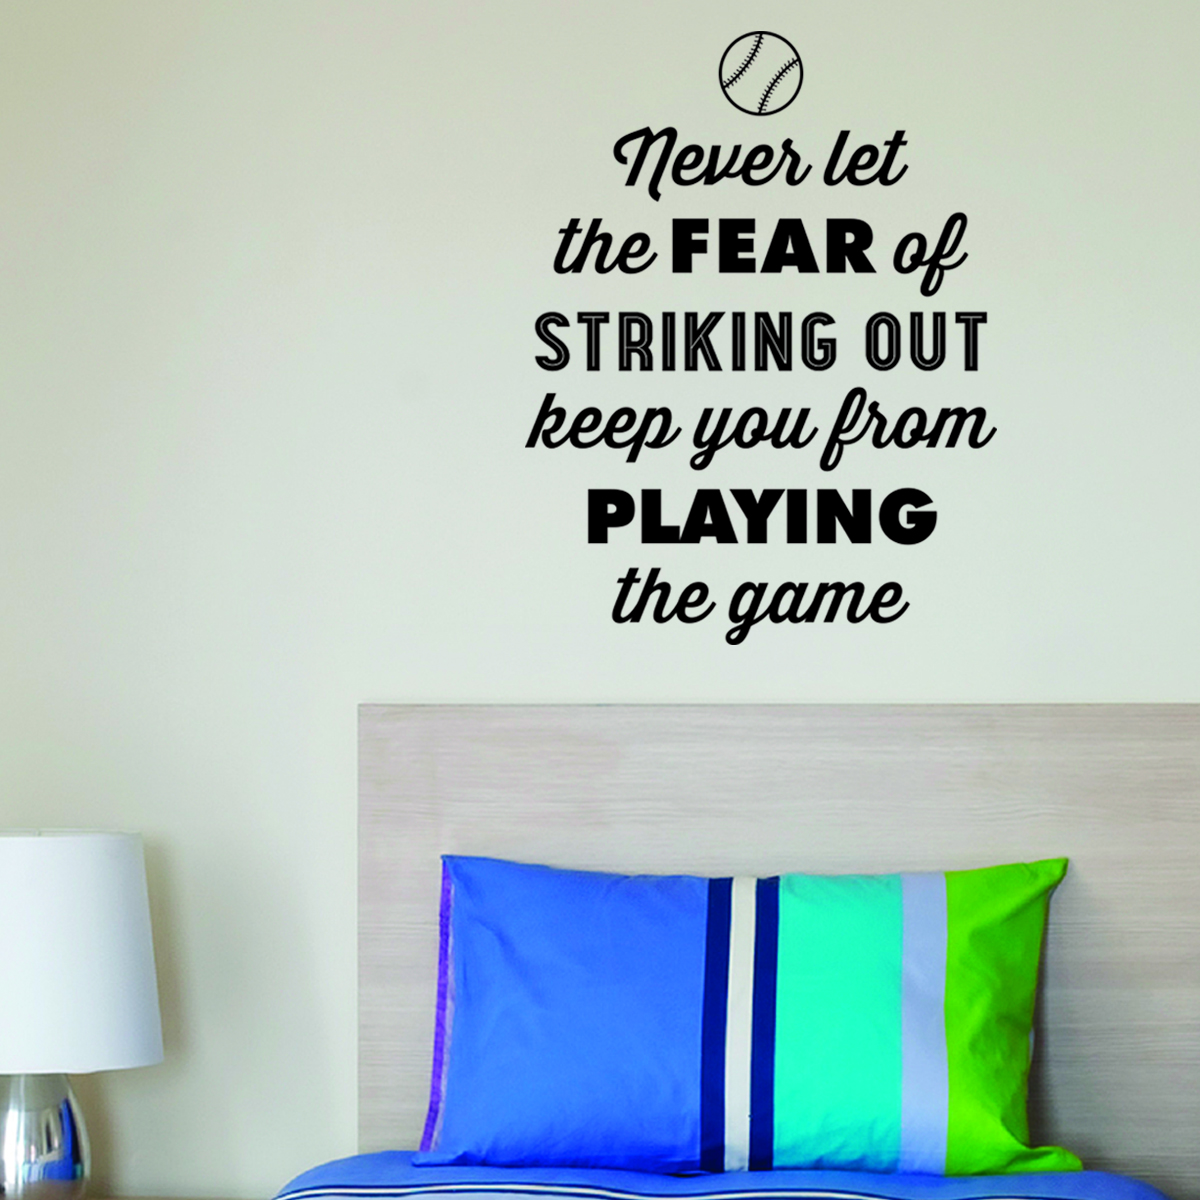 Vintage Fear Of Striking Out Wall QuotesTM Decal